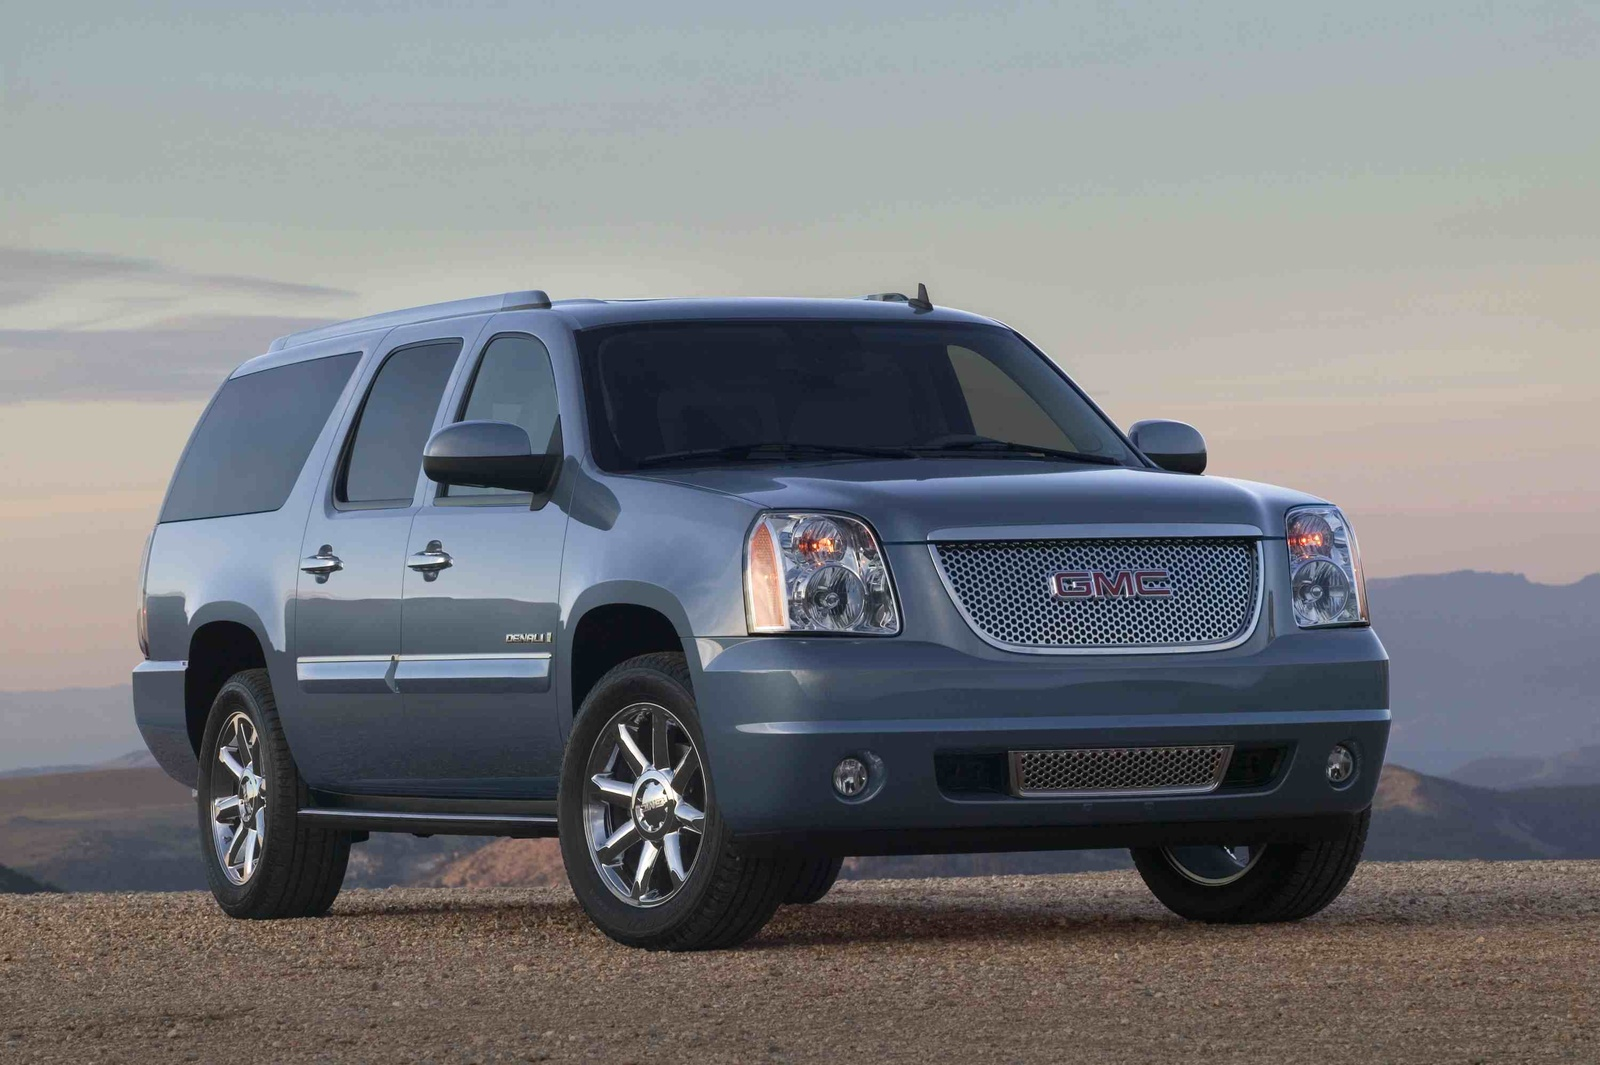 gmc yukon (gmt900) 2009 wallpaper